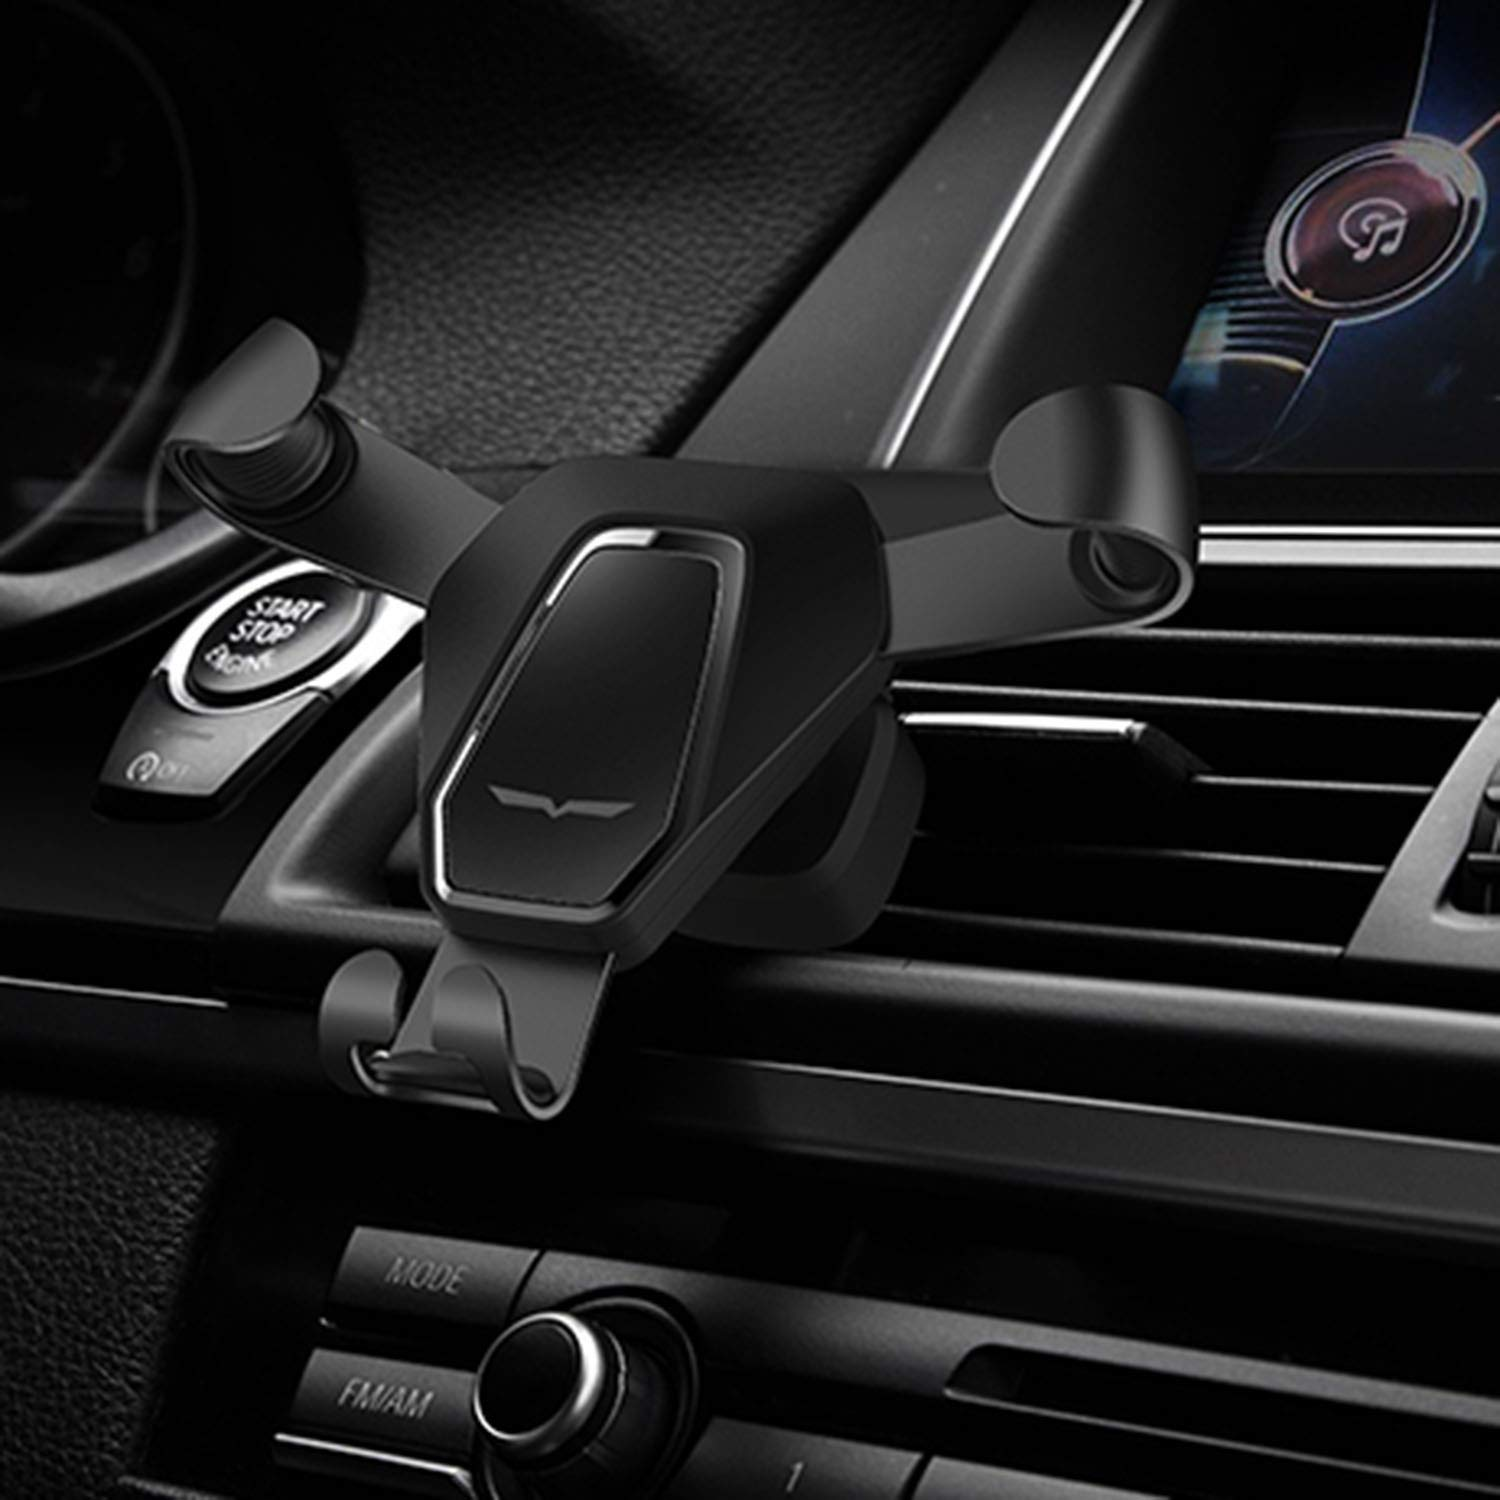 Newest Car Phone Gravity Holder Black 4351518801 Fit-Fun Air Vent Mount Cell Phone Holder with 360 degree Spring Clip Car Cradle Mount Mobile Phone Stand for iPhone X//8//8Plus//7//7Plus//6s//6Plus//5S Smartphone